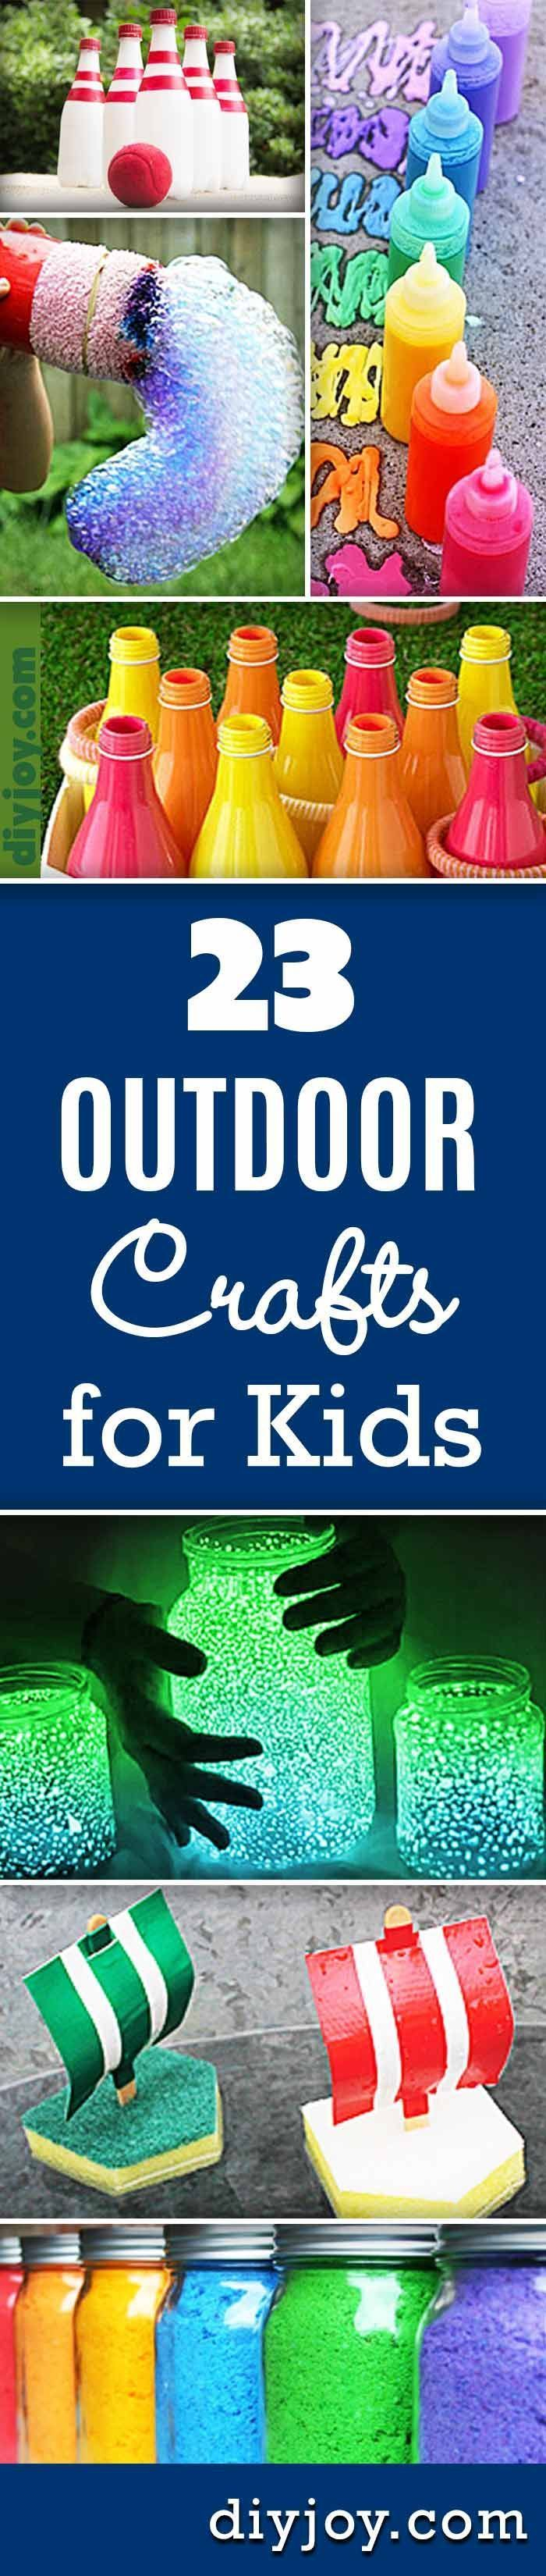 Fun Outdoor Crafts For Kids | Summer Crafts Ideas for Kids to Make at Home and DIY Projects for Children